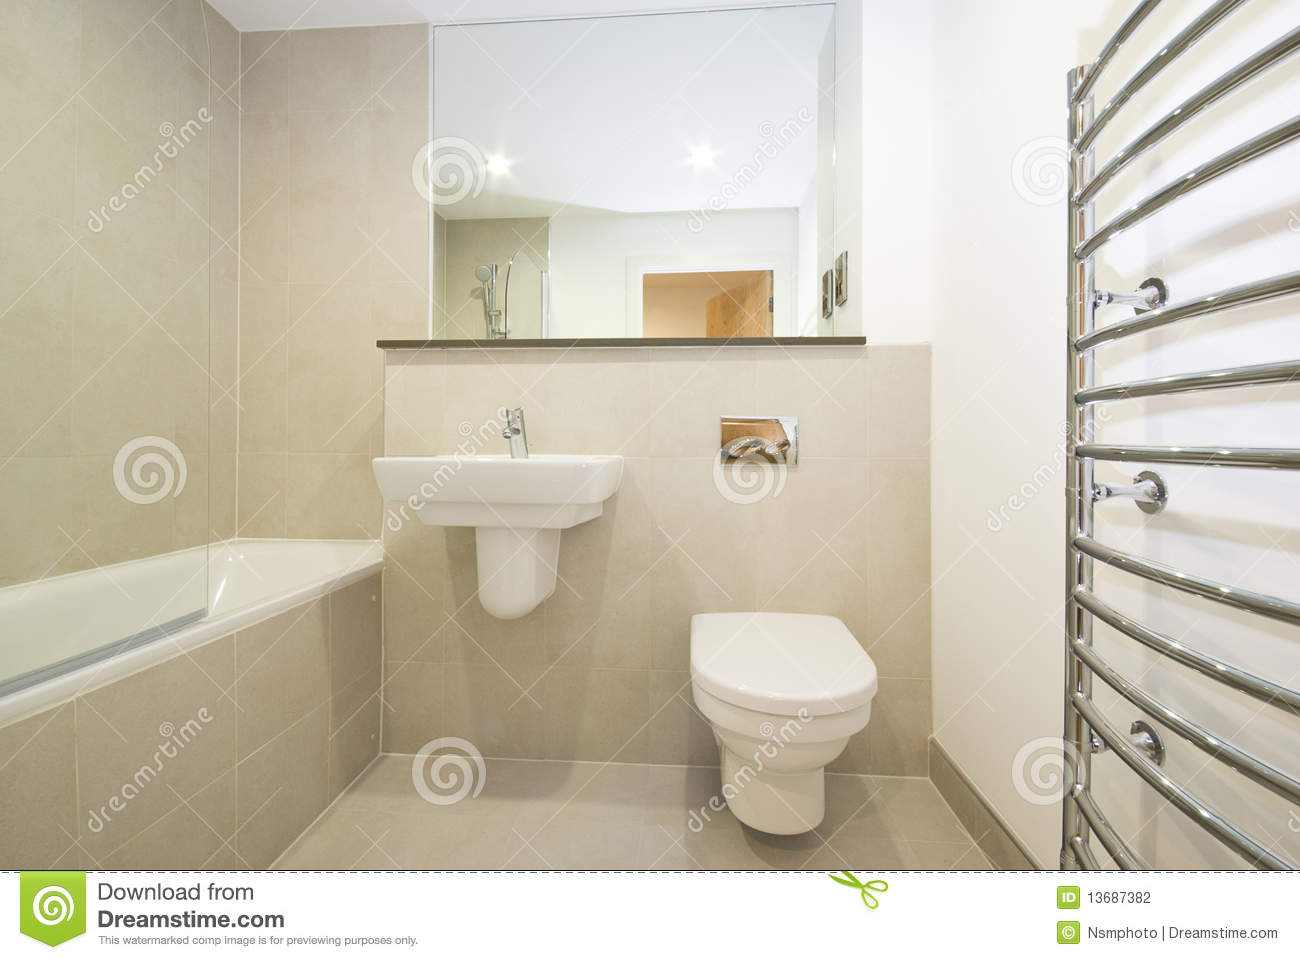 Roomido Badezimmer Modern Modern En Suie Bathroom In Beige Stock Photo Image Of Interior